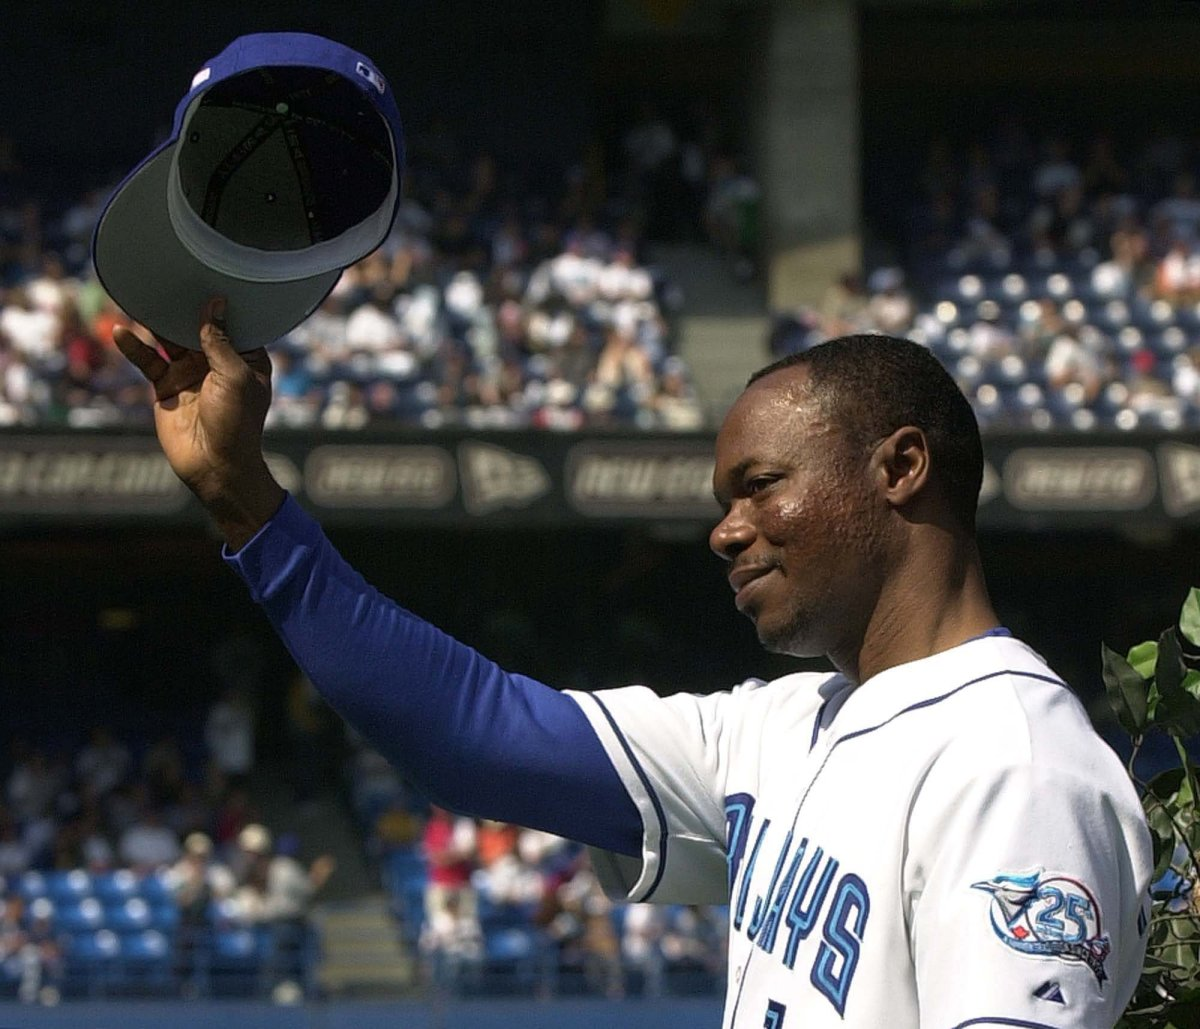 Toronto Blue Jays' Tony Fernandez tips his hat to the crowd as he takes part in a pre-game ceremony against the Tampa Bay Rays in Toronto Sunday September 23, 2001.